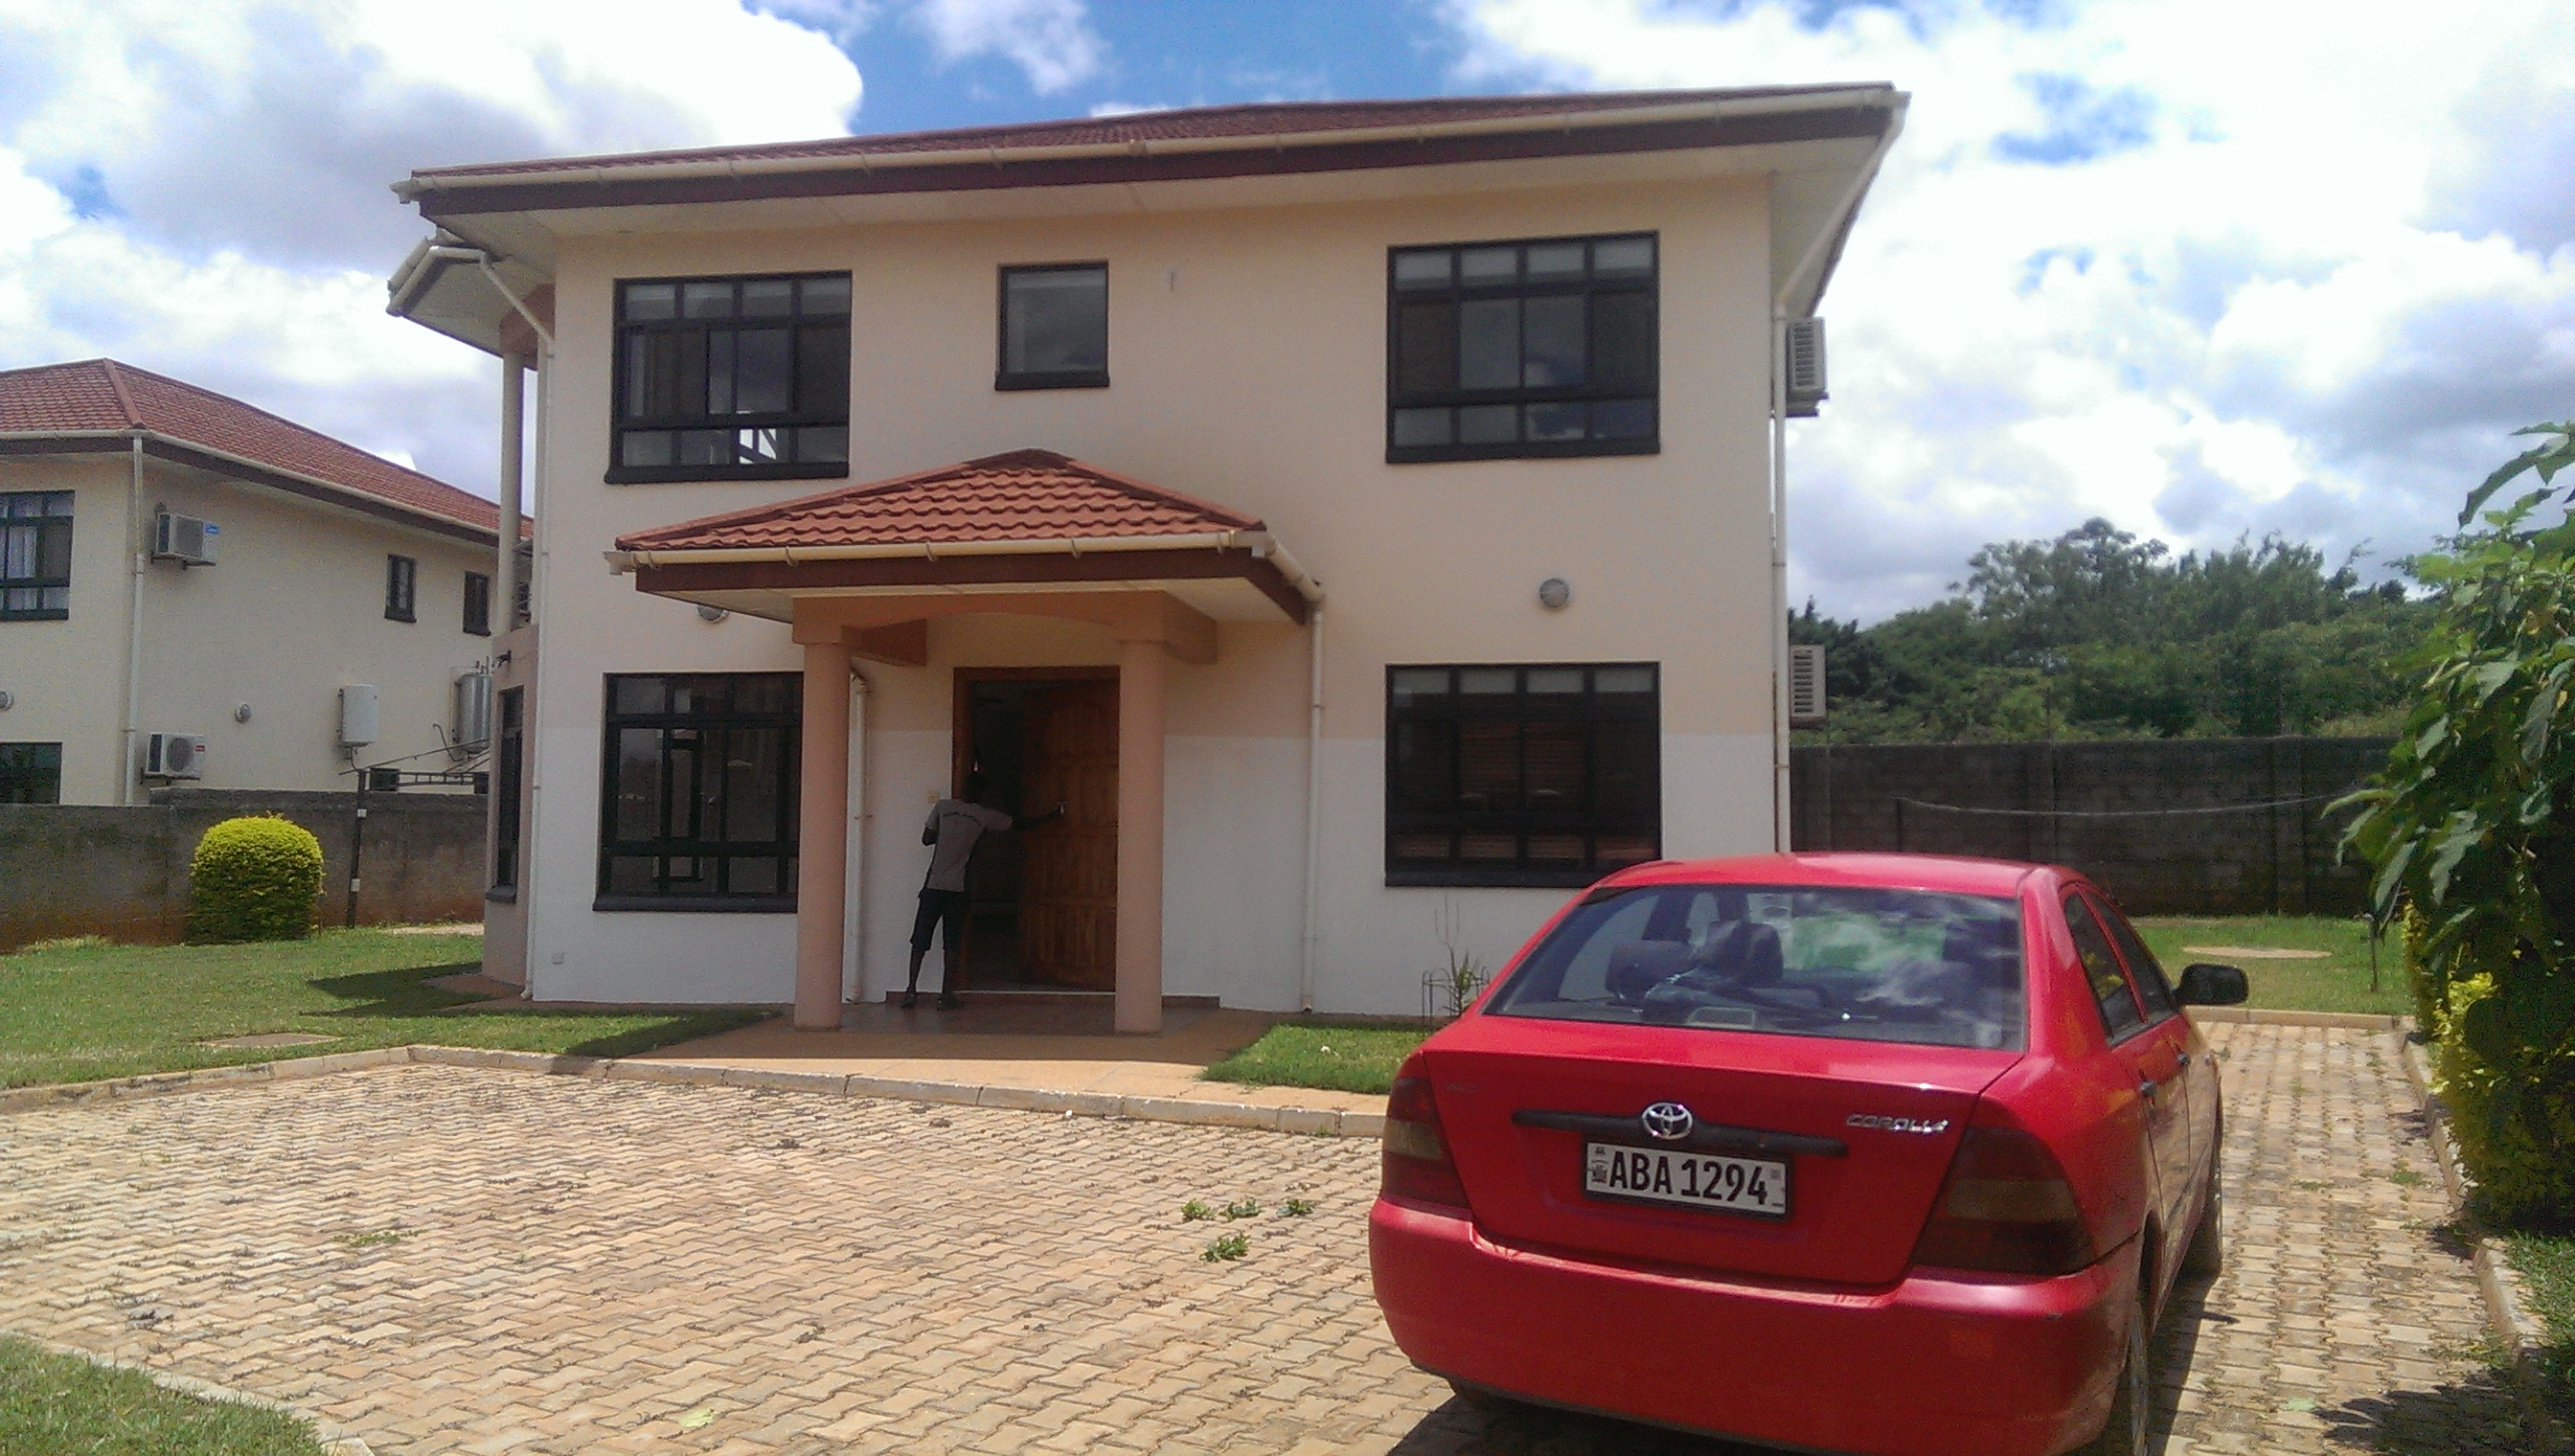 4BedroomTownhouseWoodlandsLewanikaClose(10)1559618290